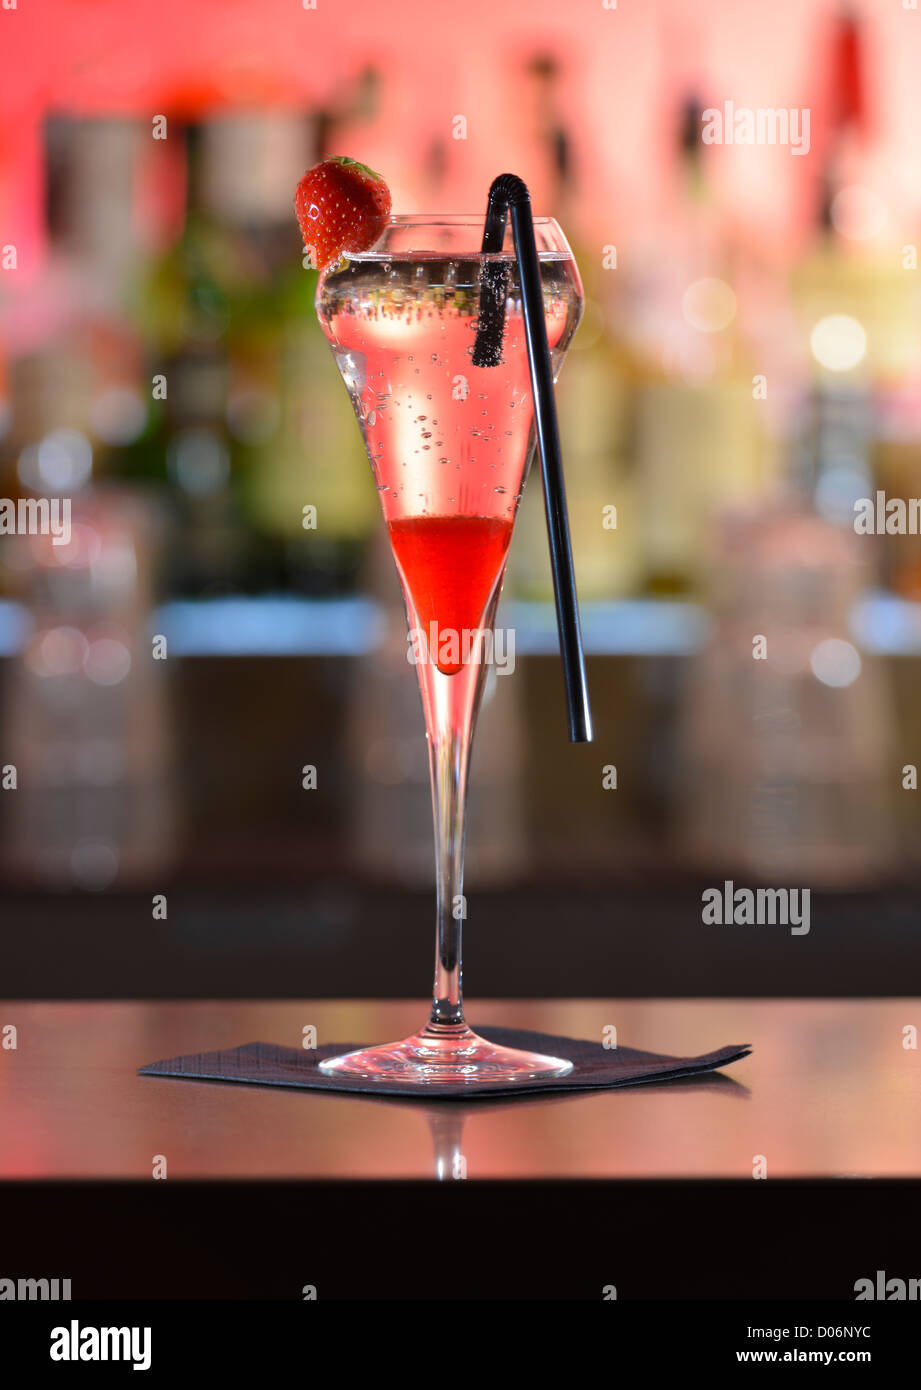 Cocktail on a bar - Stock Image